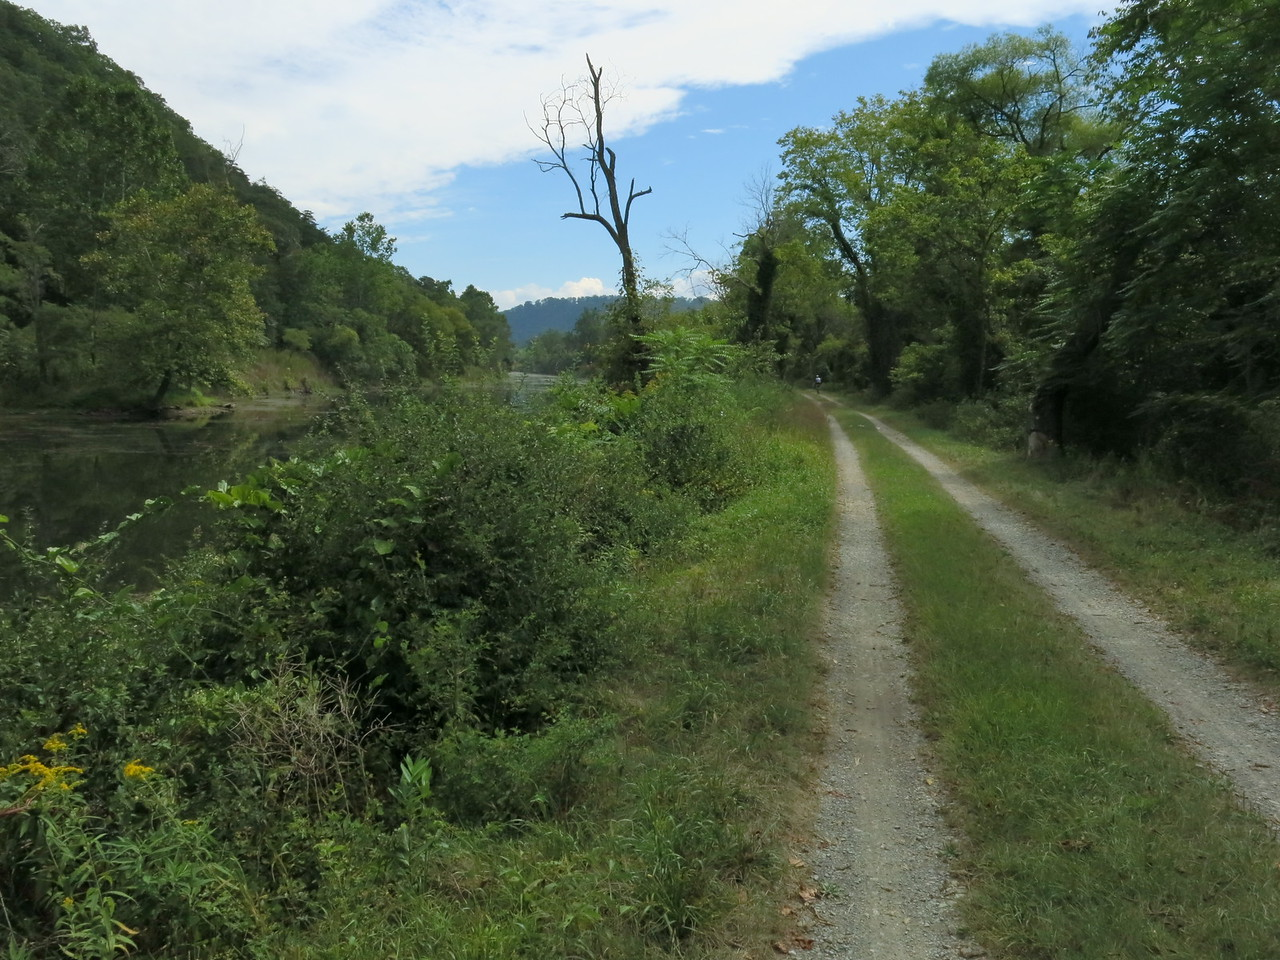 Canal on the left and towpath on the right